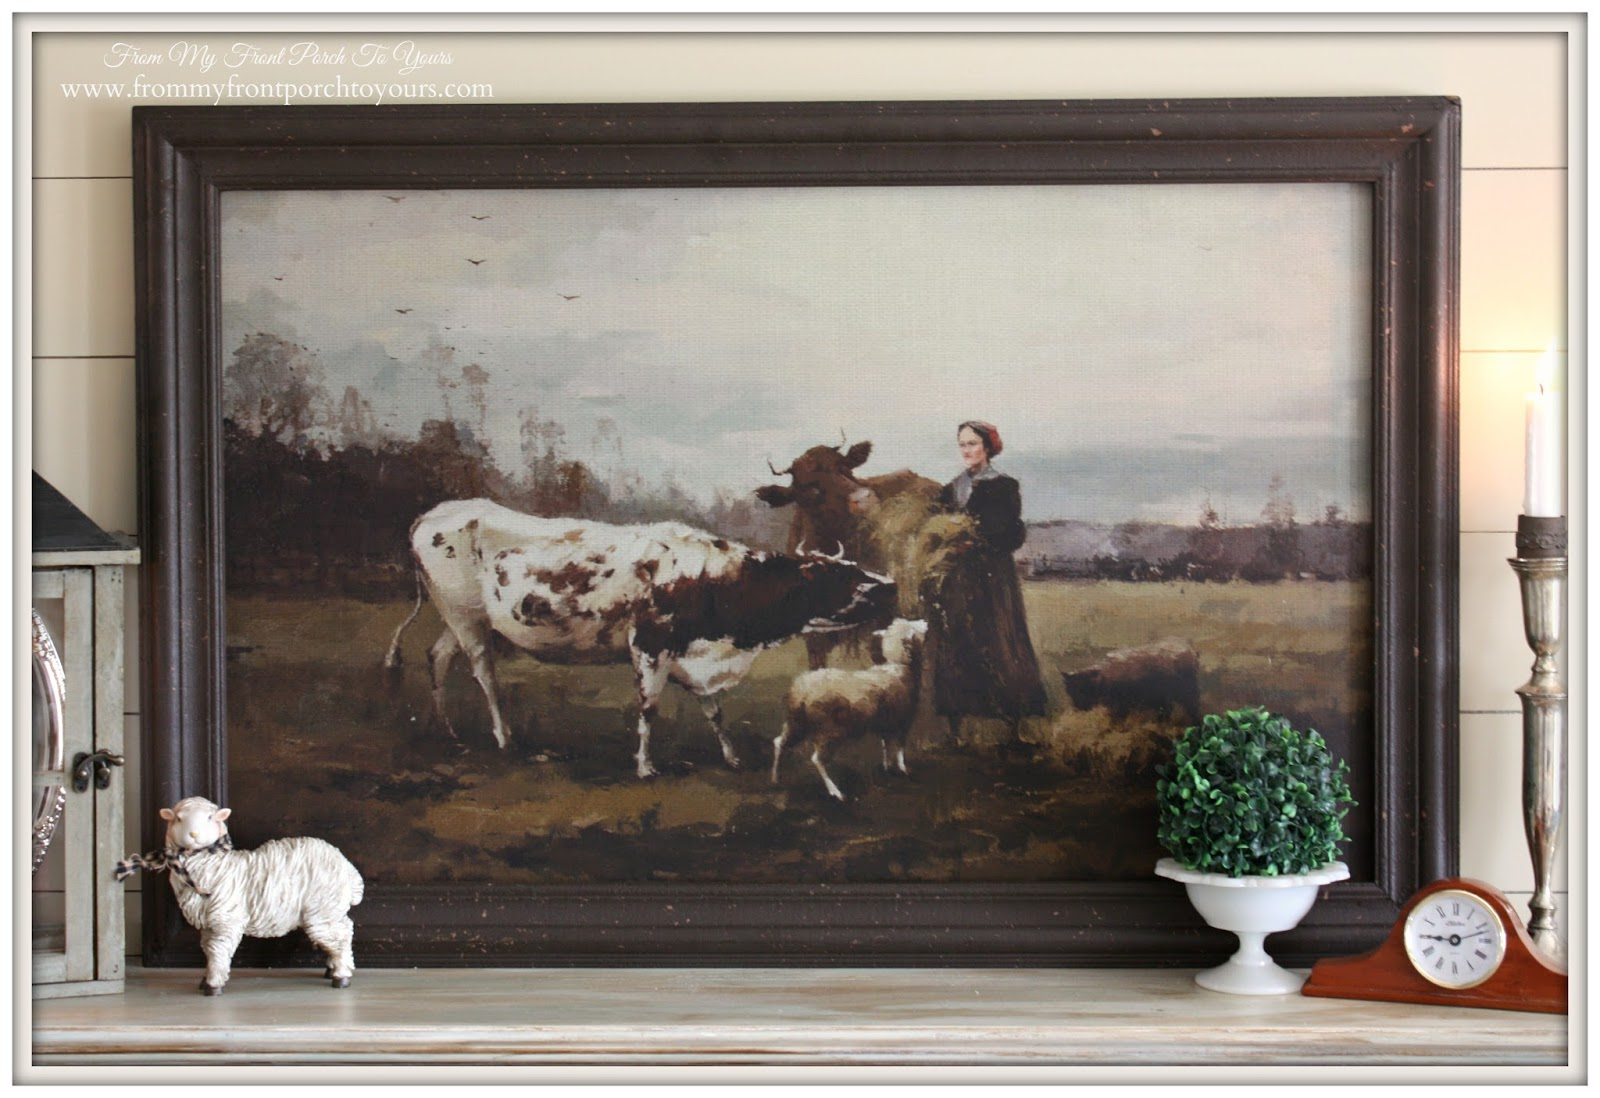 Pastoral Painting-French Country Mantel Vignette- From My Front Porch To Yours